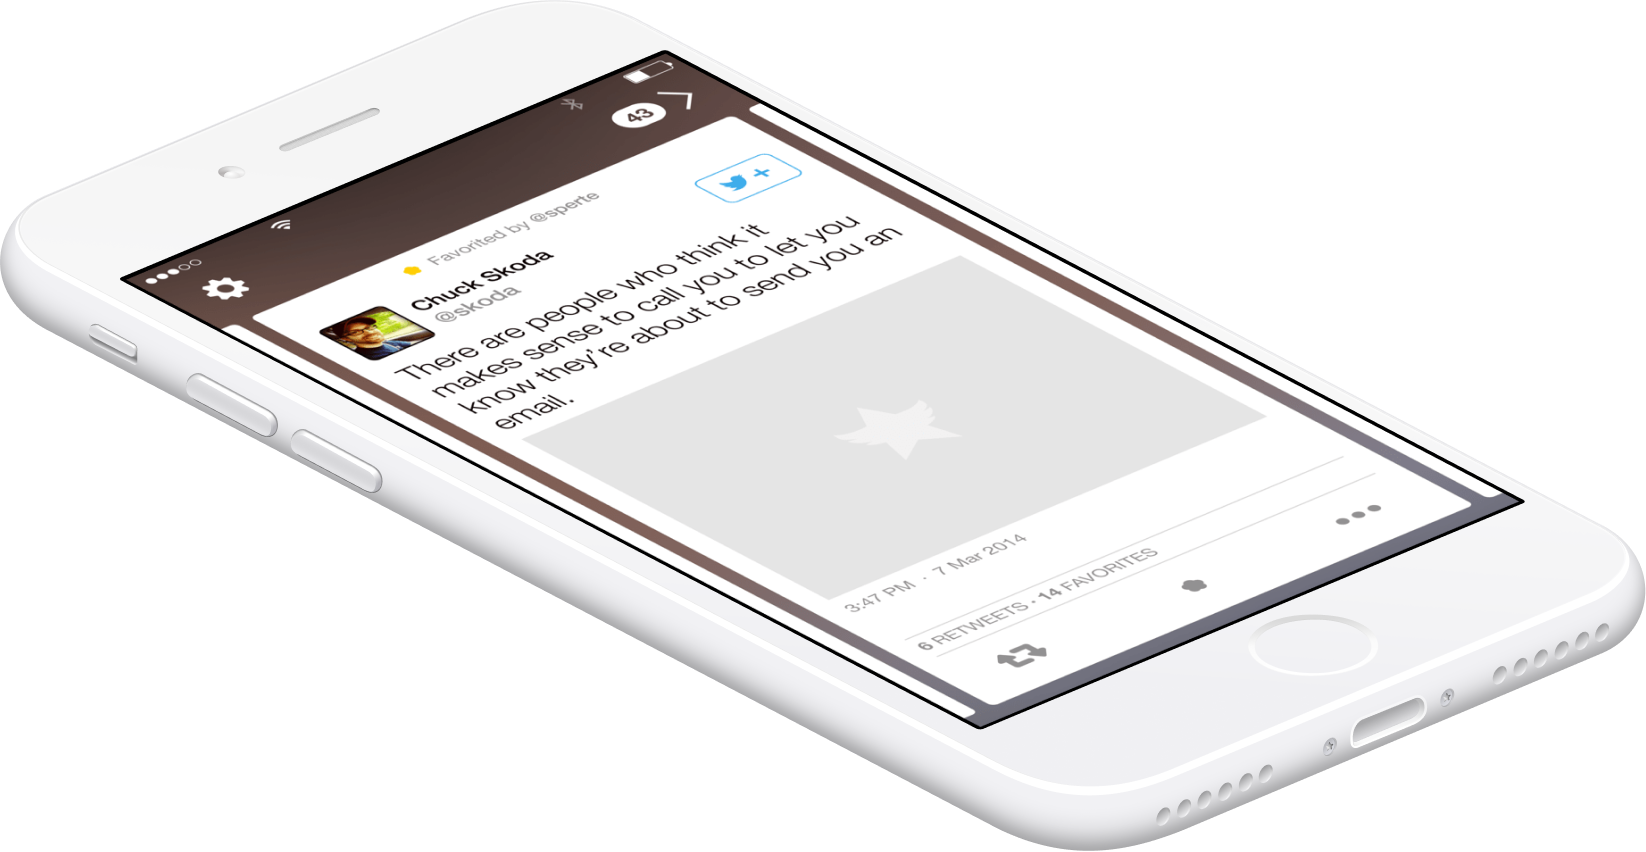 An iPhone laying on its back showing an app with a card-like interface for a tweet.